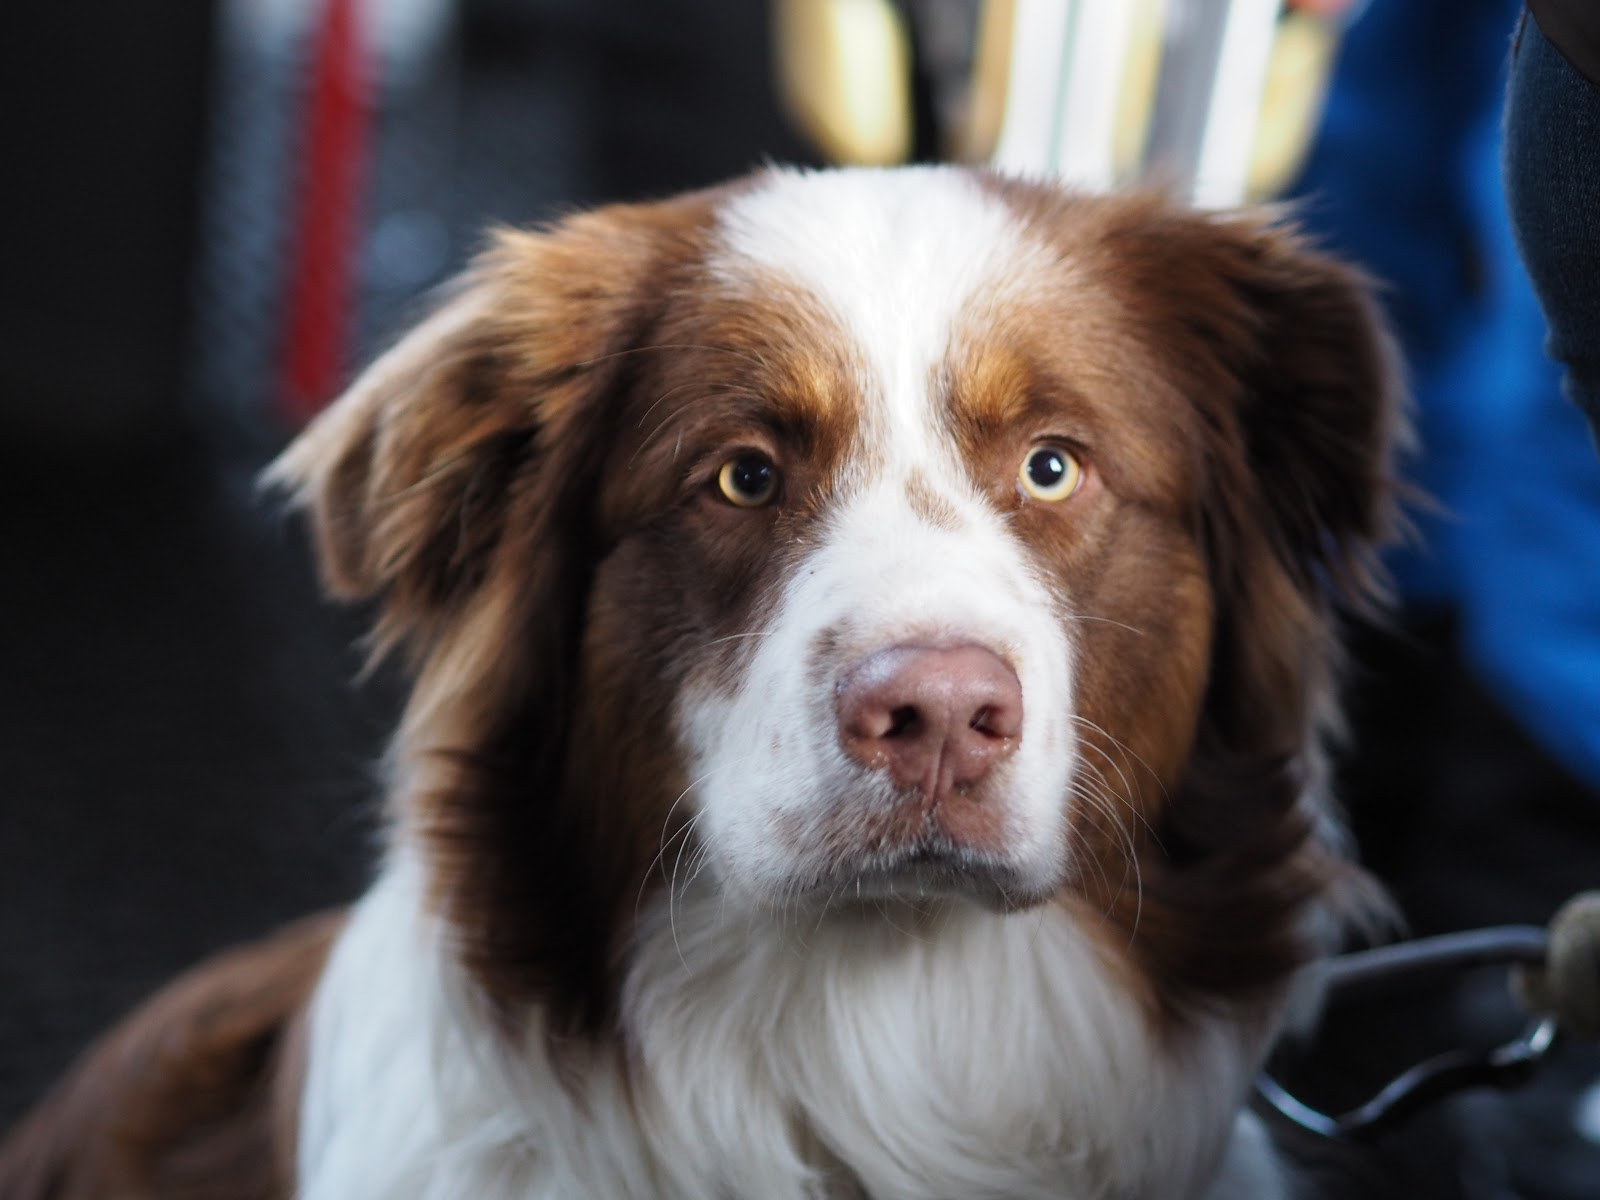 Fluffy brown and white dog with yellow eyes